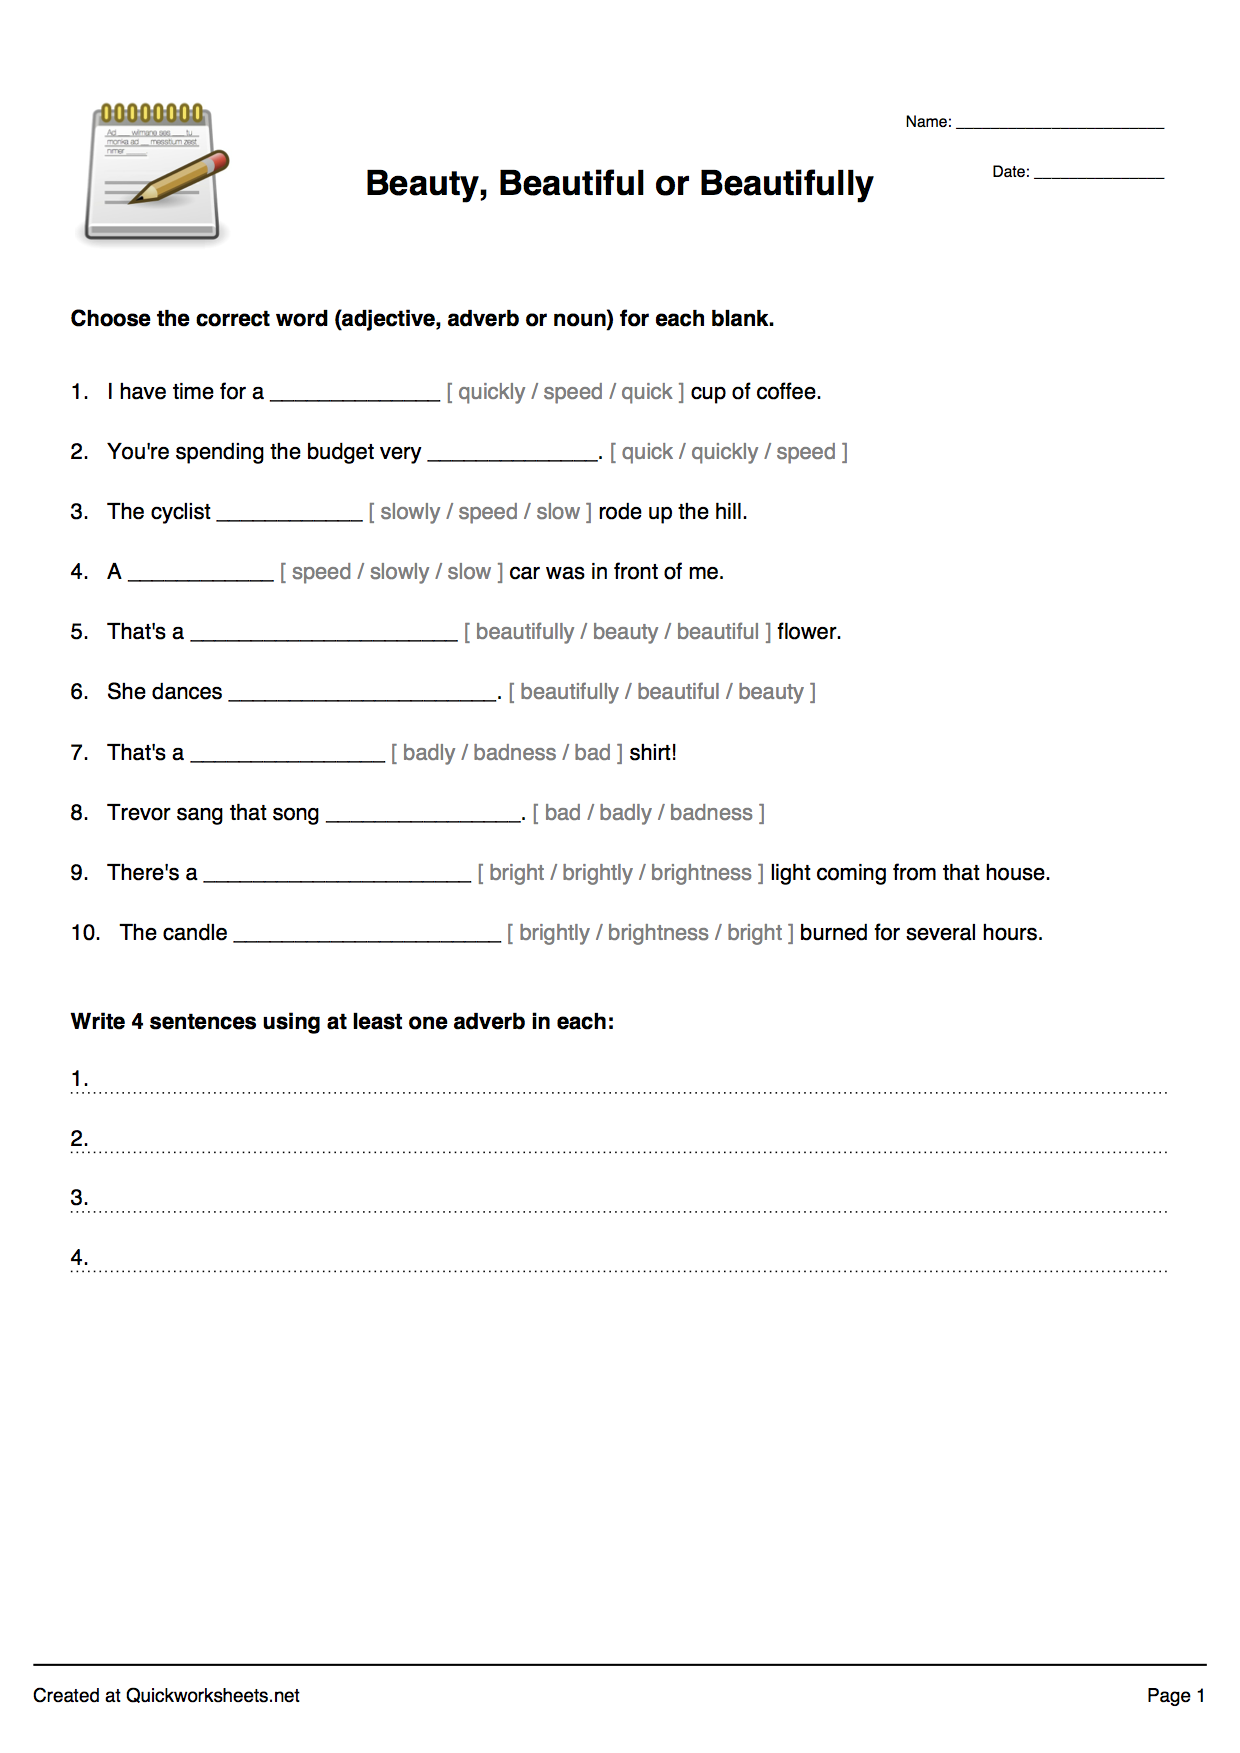 FillintheBlank Sentences Worksheet Maker – Free Handwriting Worksheet Maker